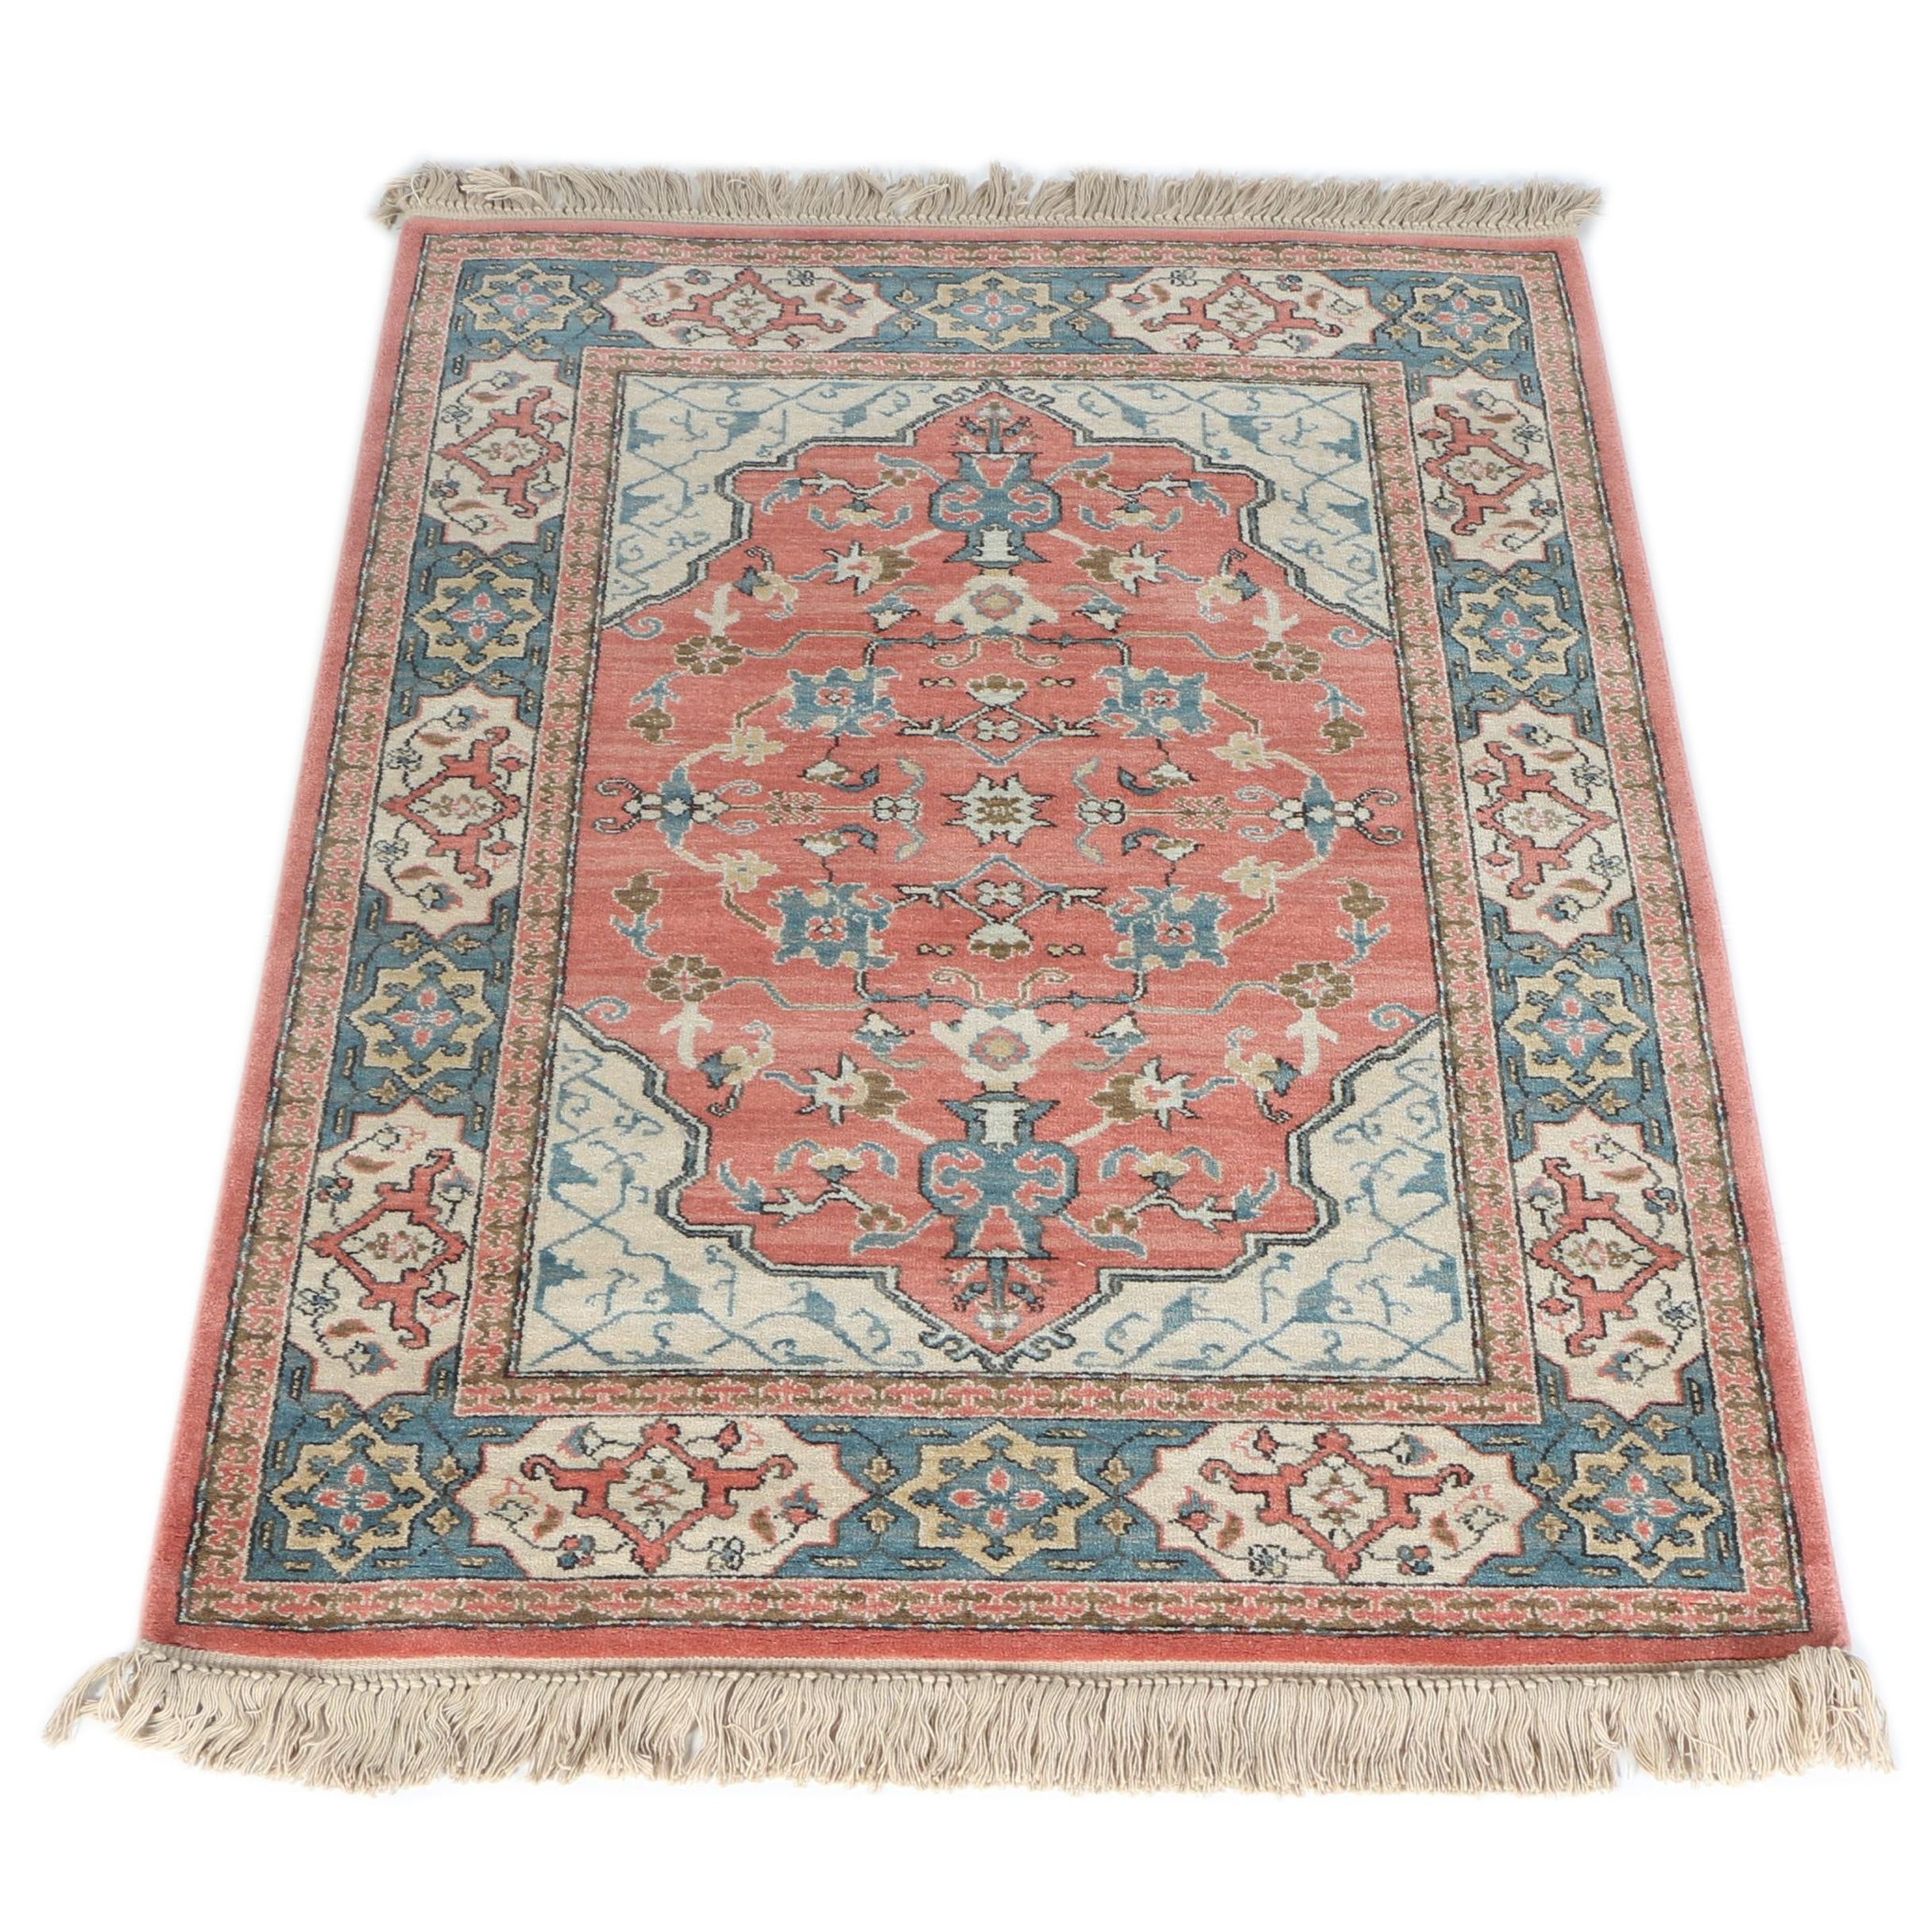 "Power-Loomed Karastan ""Bergama Design"" Wool Area Rug"